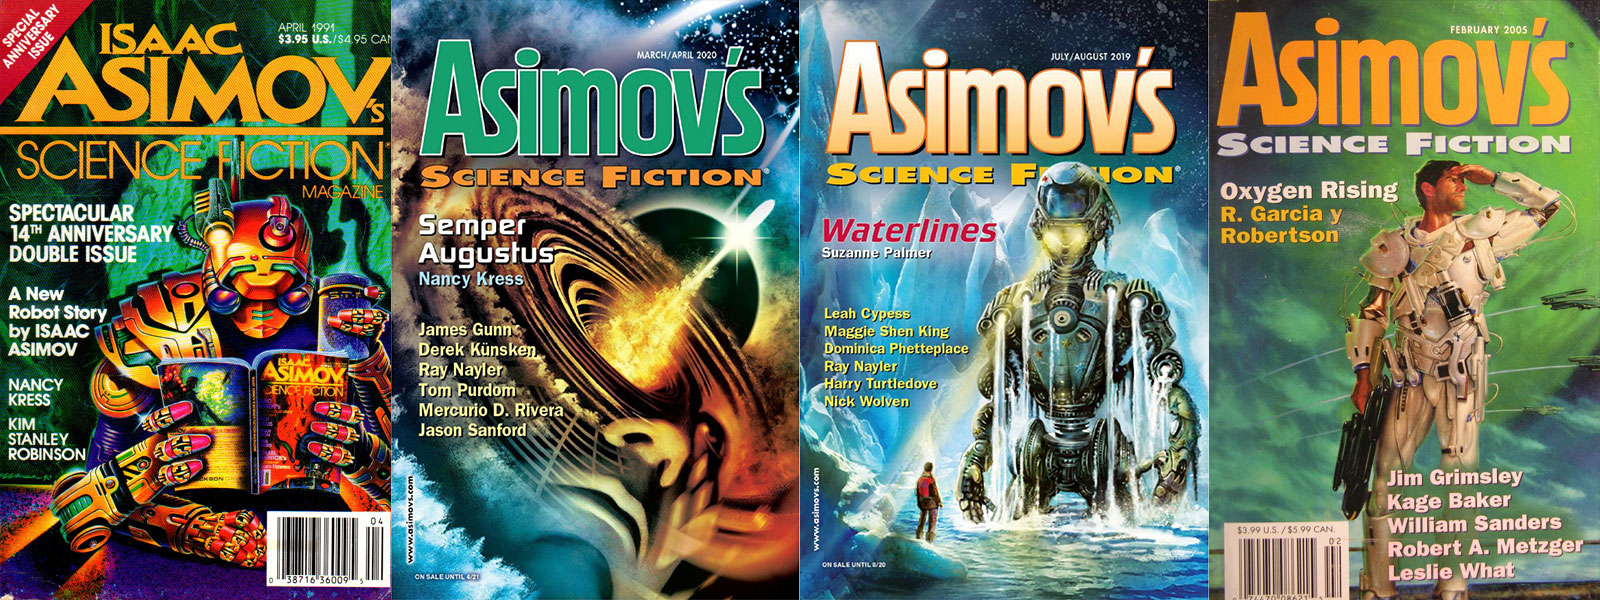 asimov's science fiction magazine banner